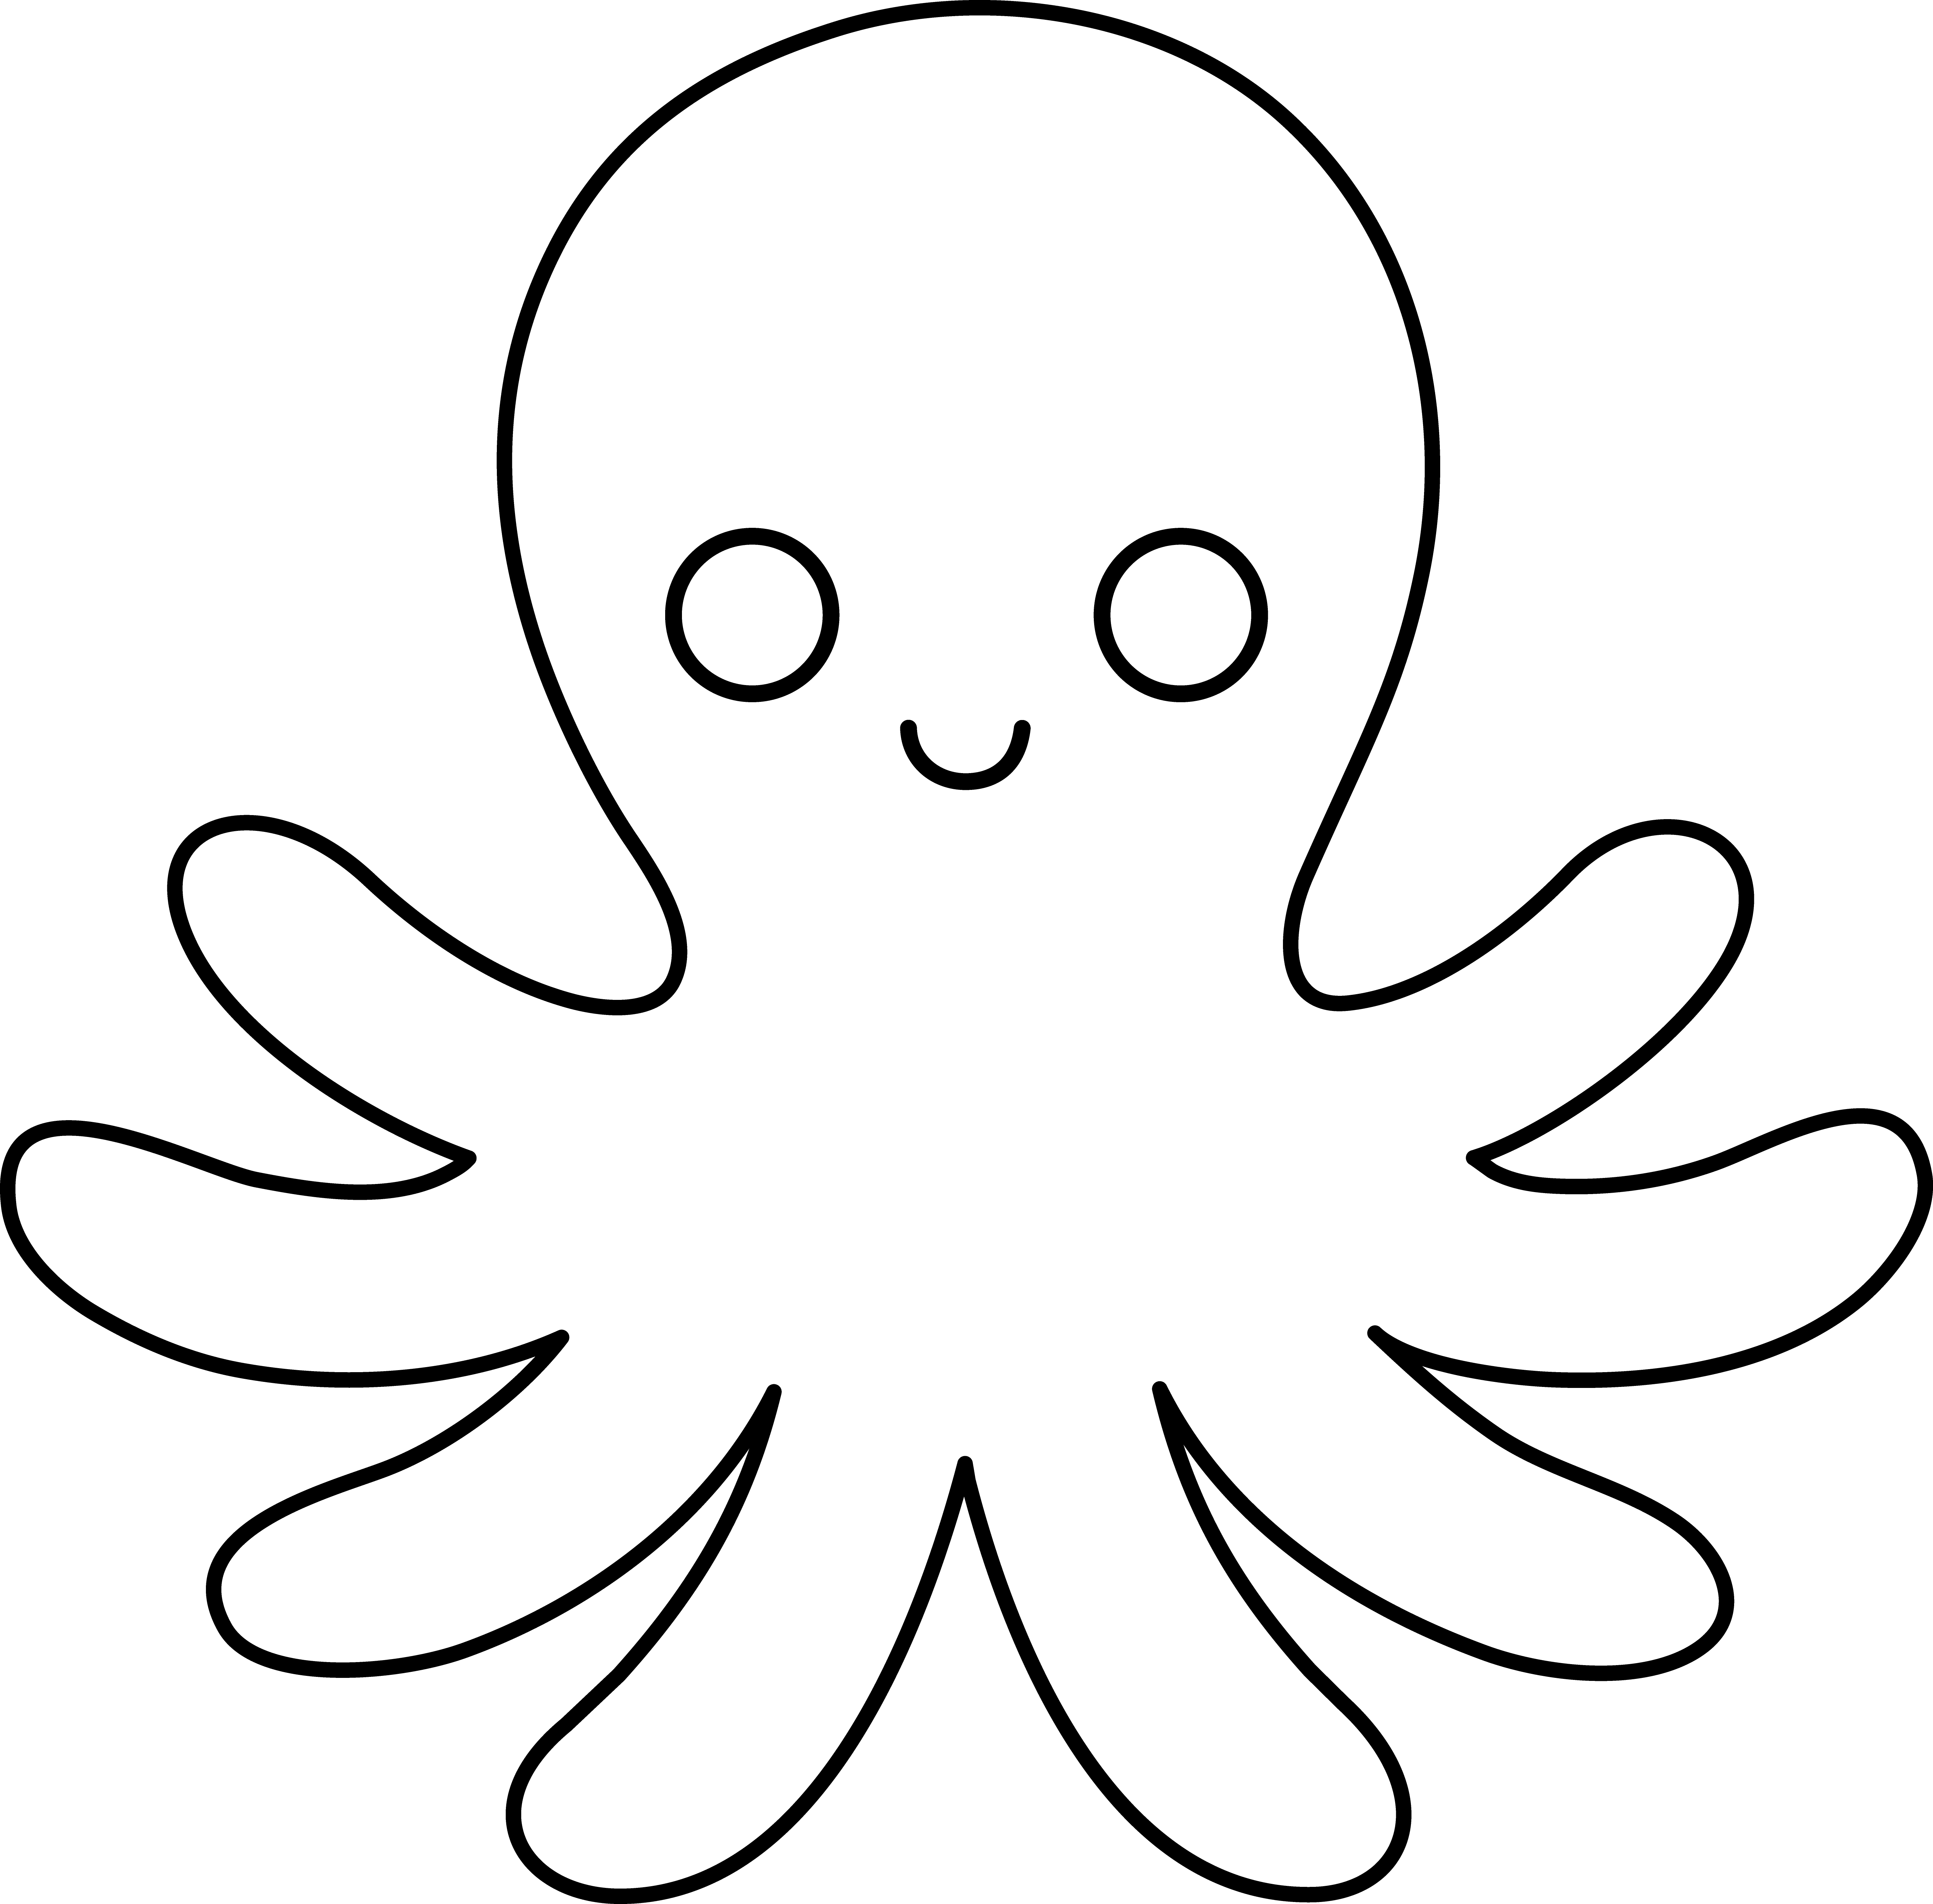 Squid clipart octopus. Realistic coloring page panda